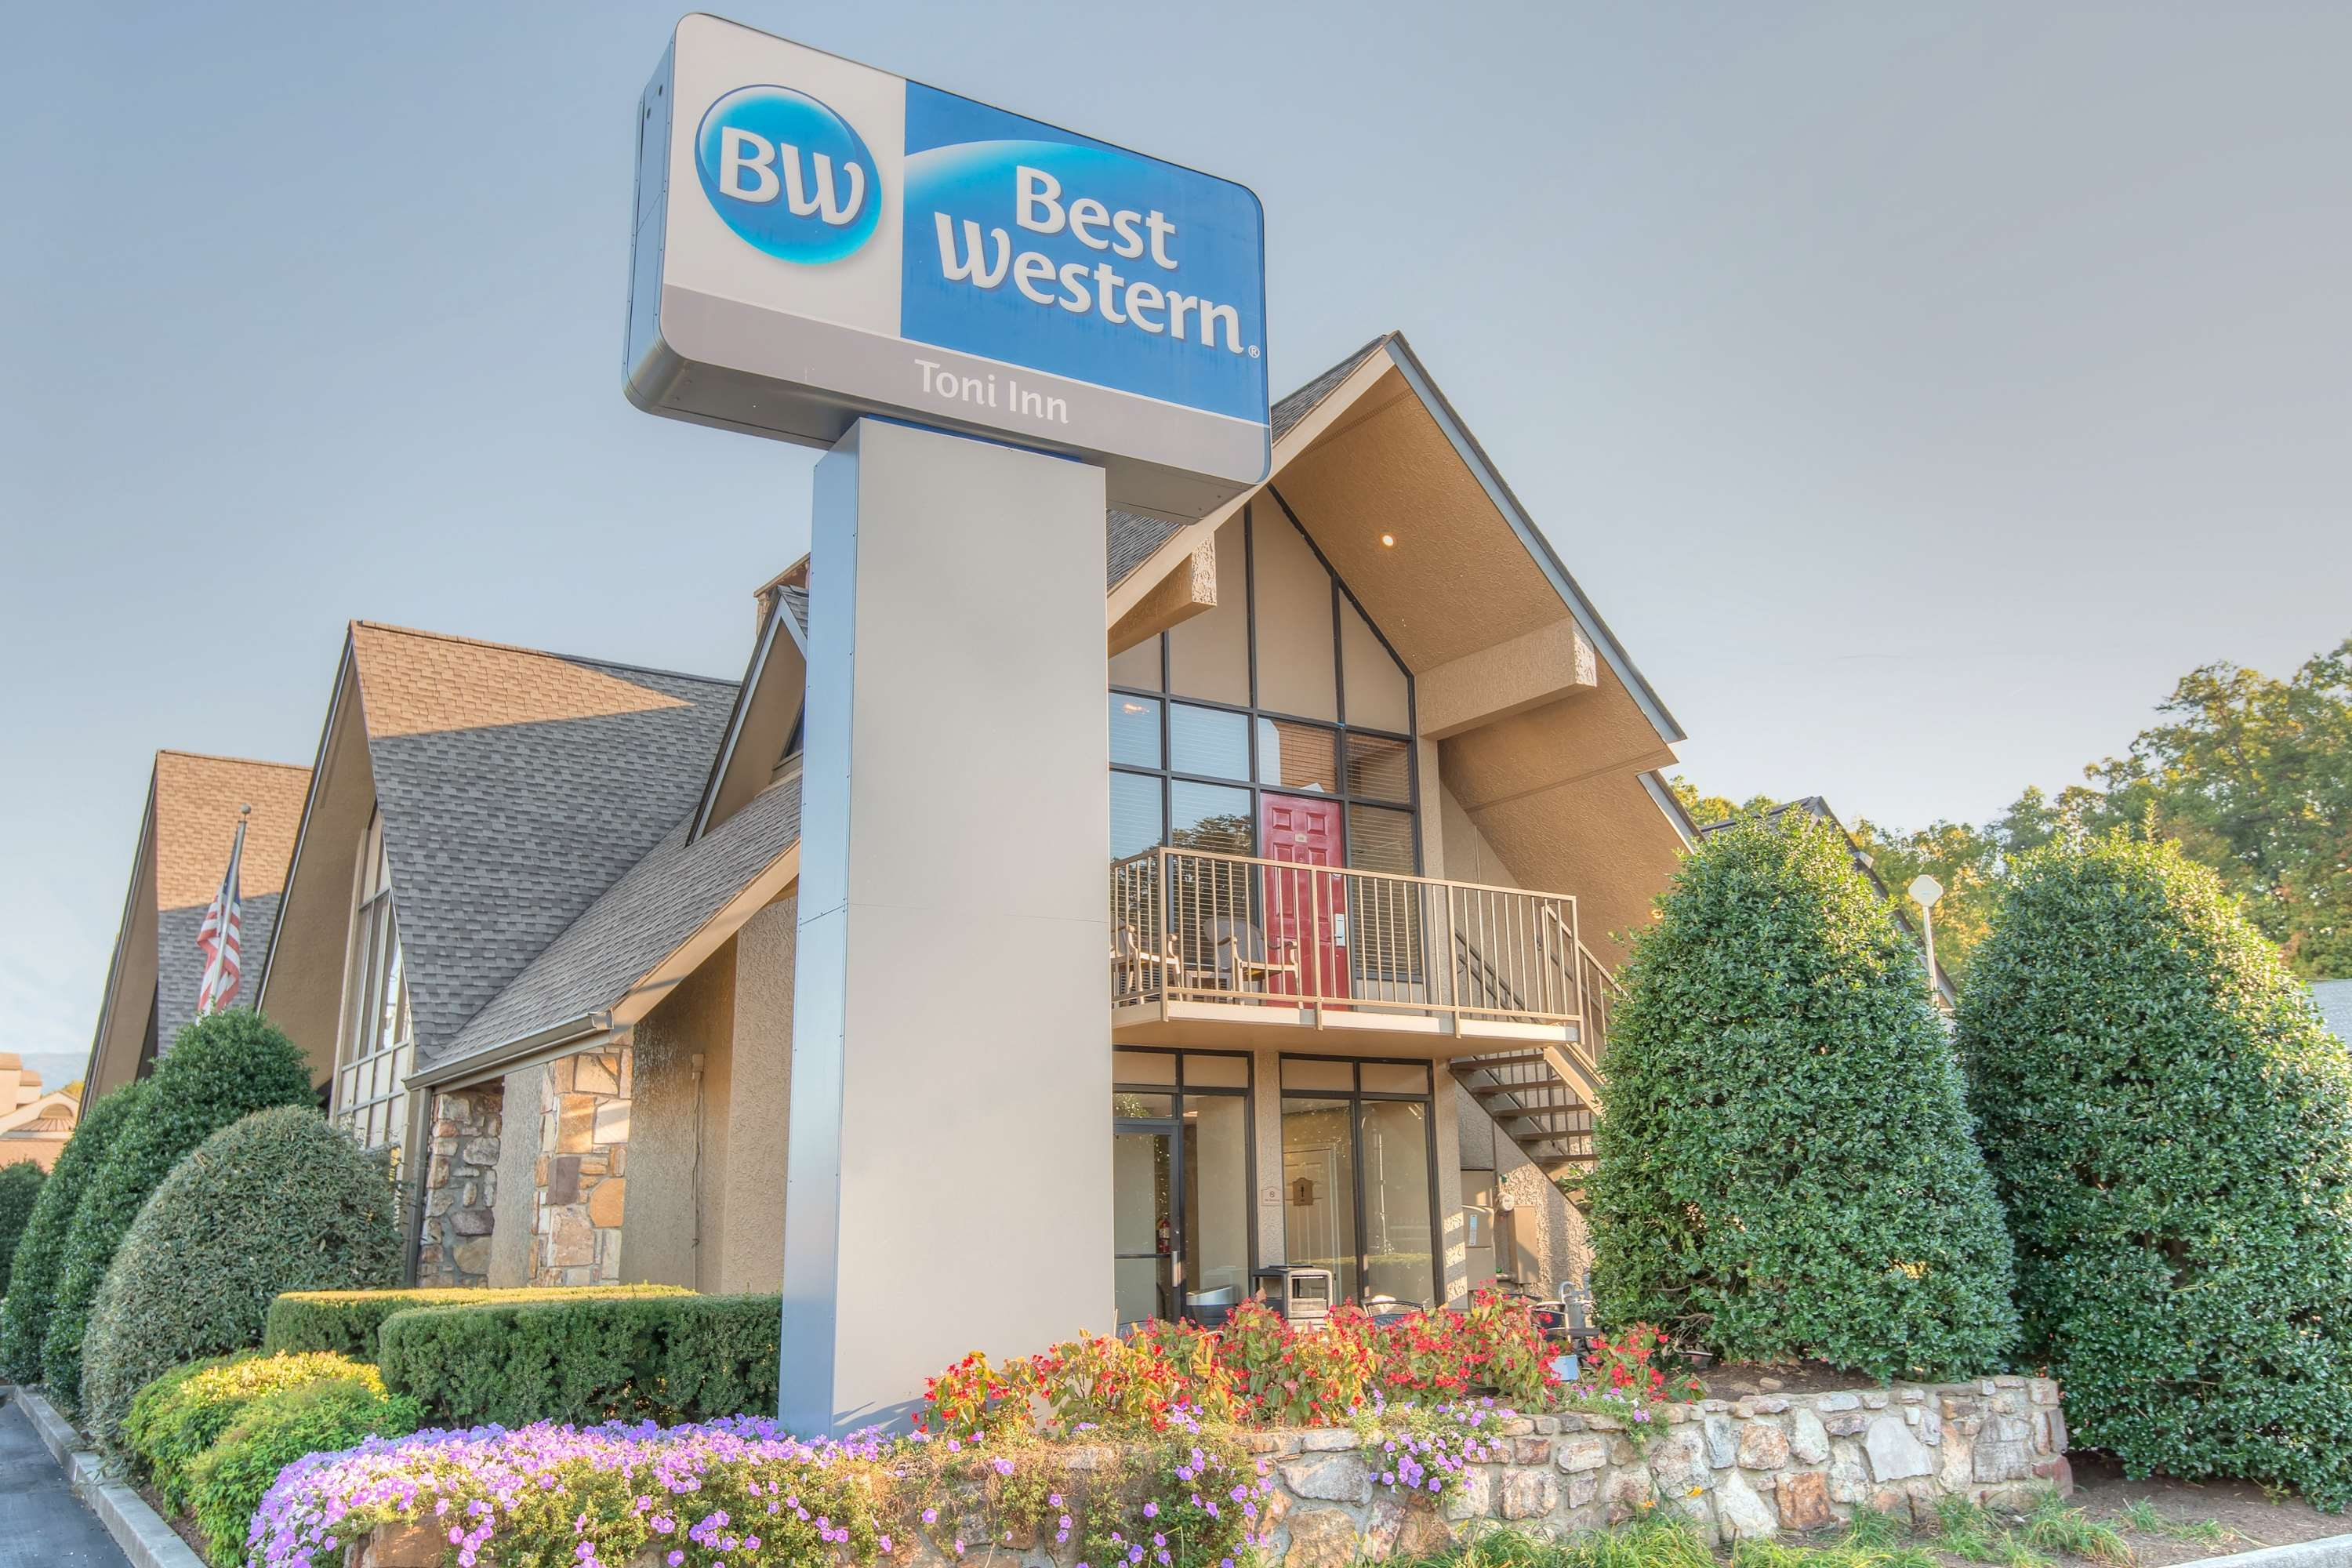 Best Western Motels In Pigeon Forge Tn